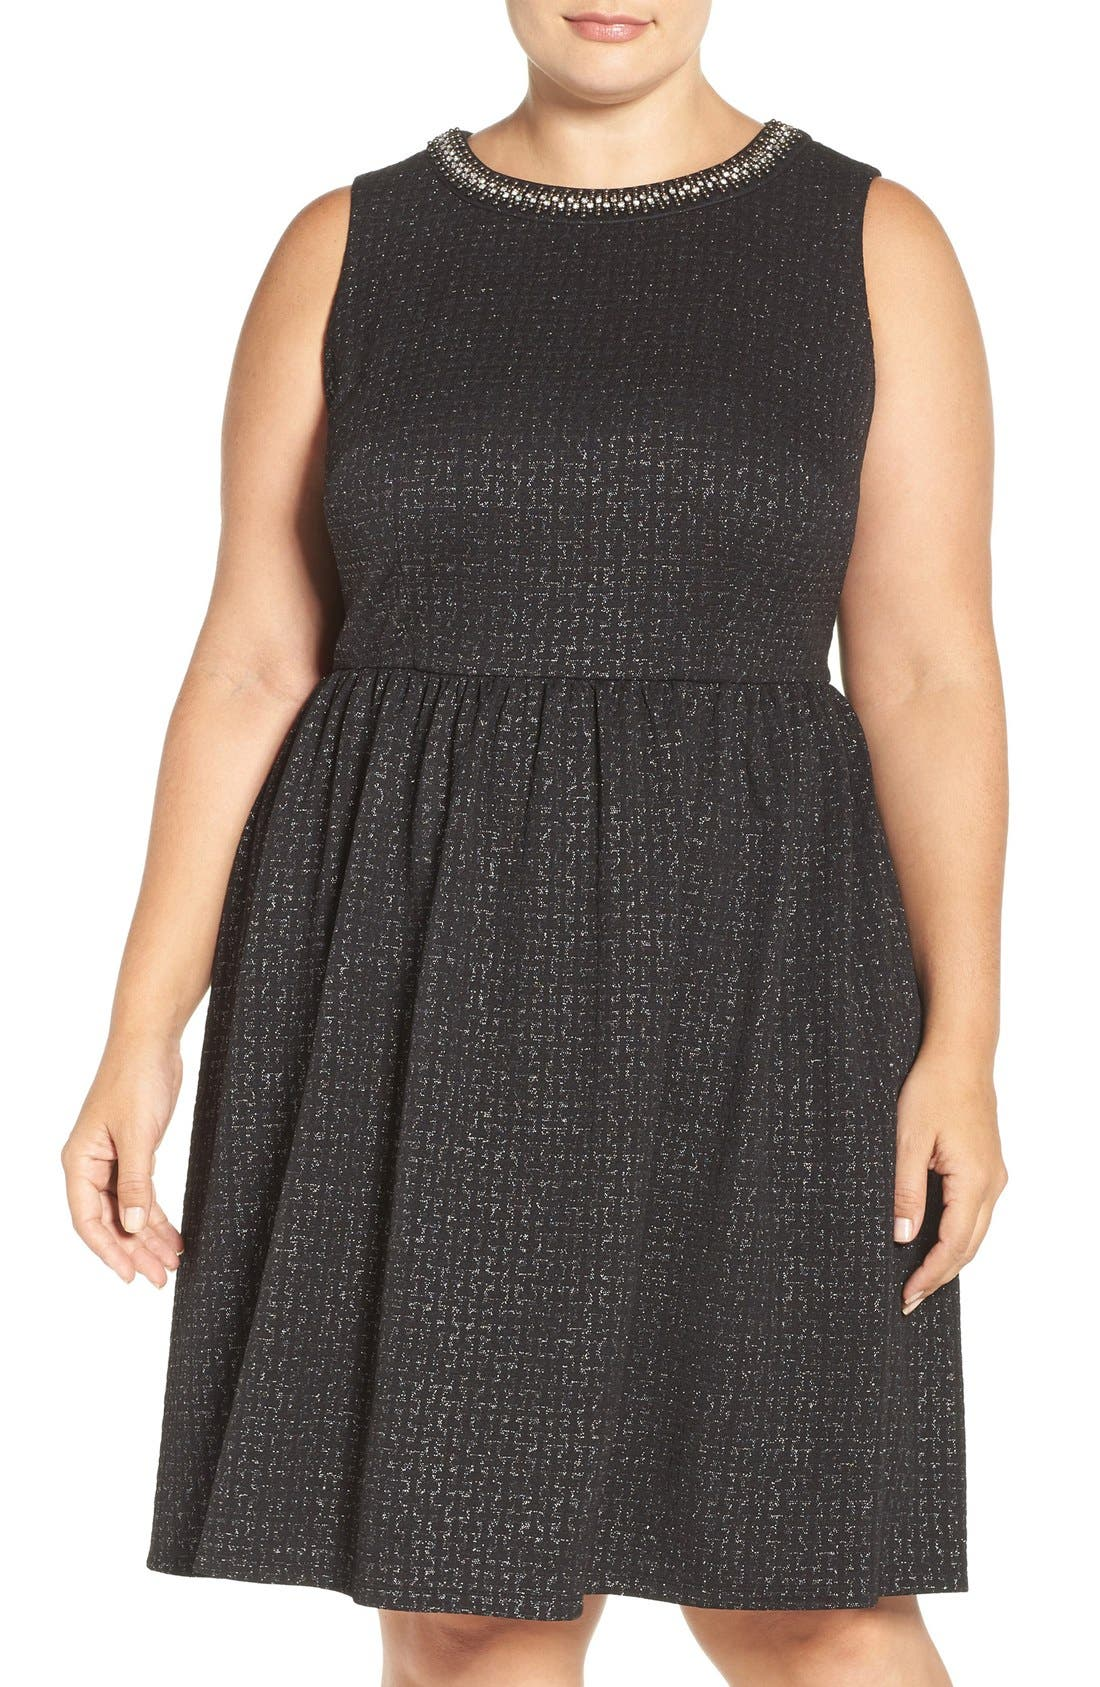 Embellished Stretch Fit & Flare Dress,                         Main,                         color, Black/ Silver